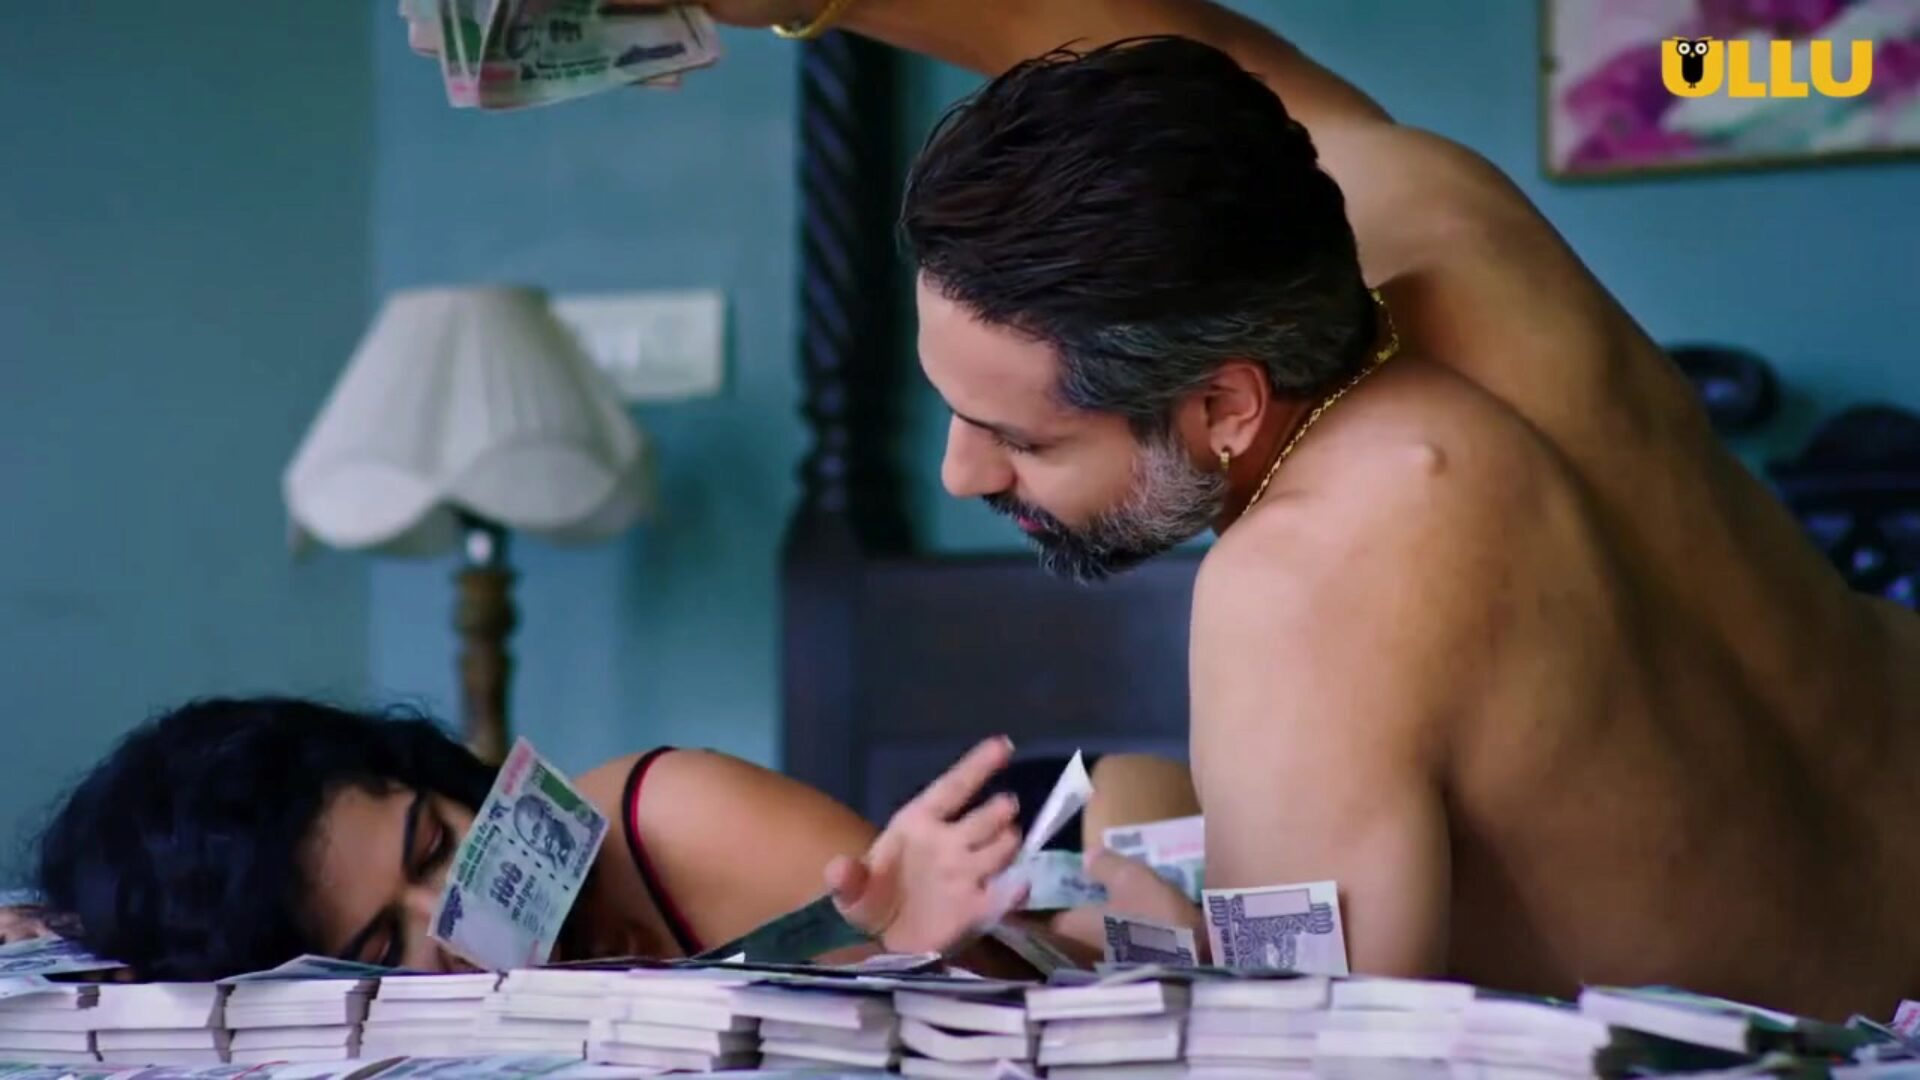 Indian Actress Manisha Sharma doing sex for cash and stardom Manisha Sharma as actress Divya doing vehement romp with big businessman for cash and stardom in bollywood indusrty She woo him for be his partner but that guy tear up her rock-hard in his lap as rejection Ullu